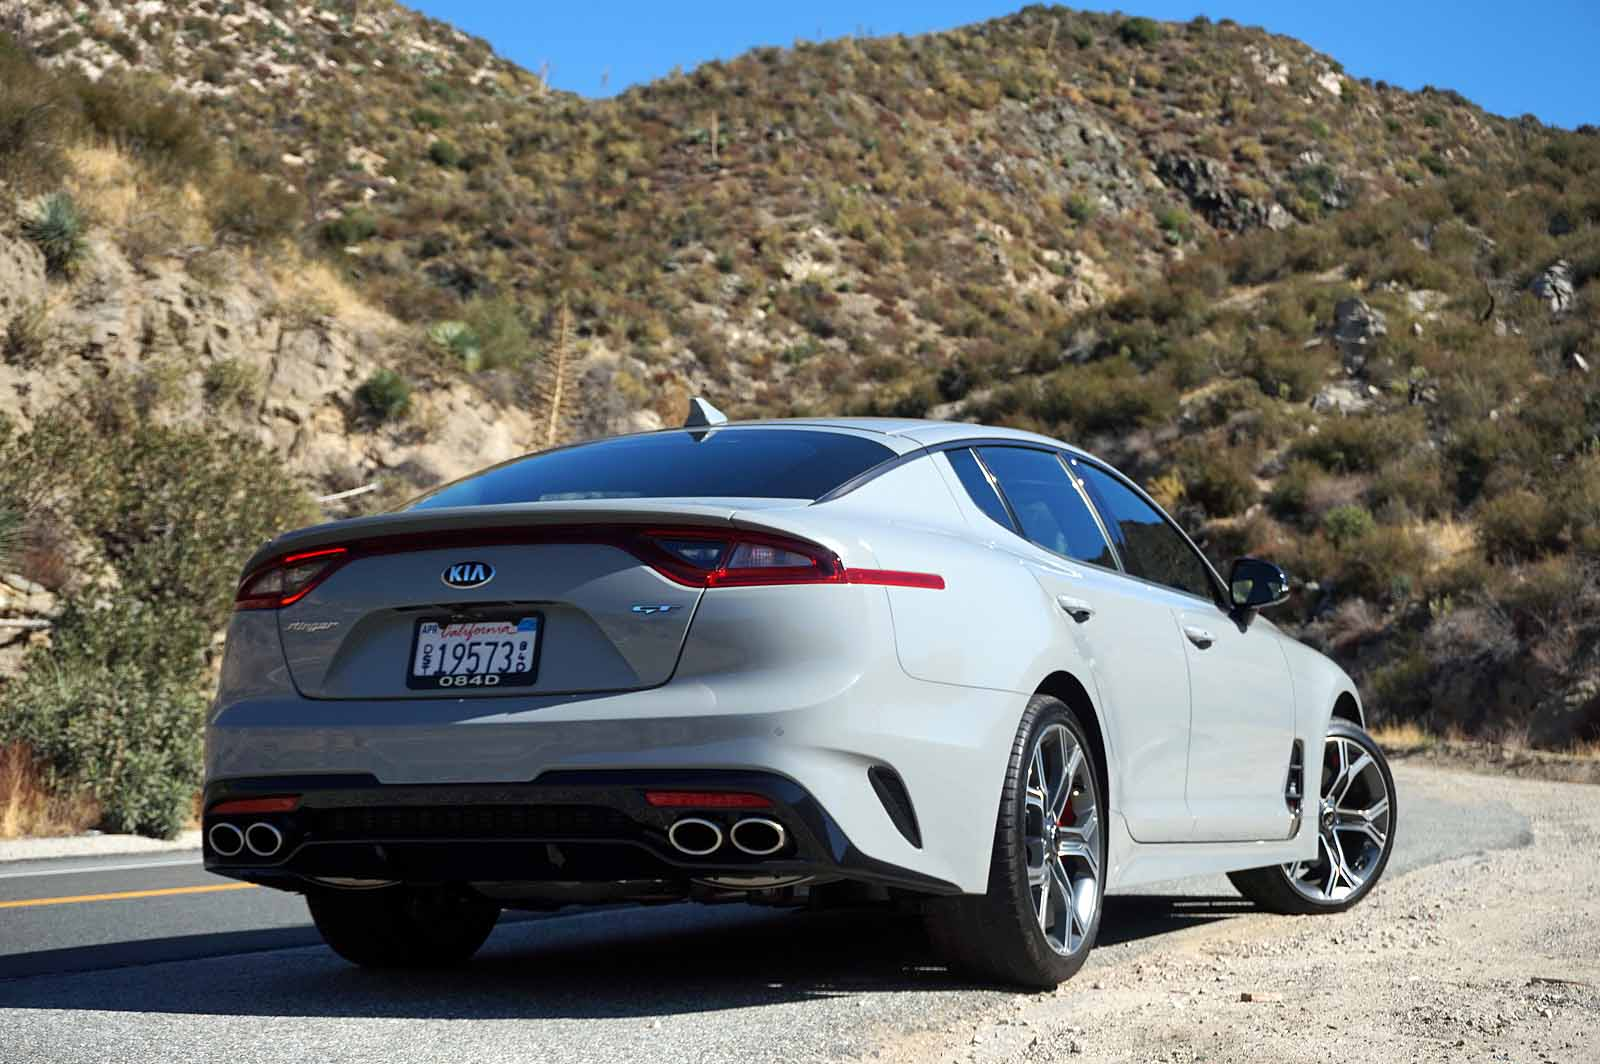 2018 Kia Stinger Review Lai 42